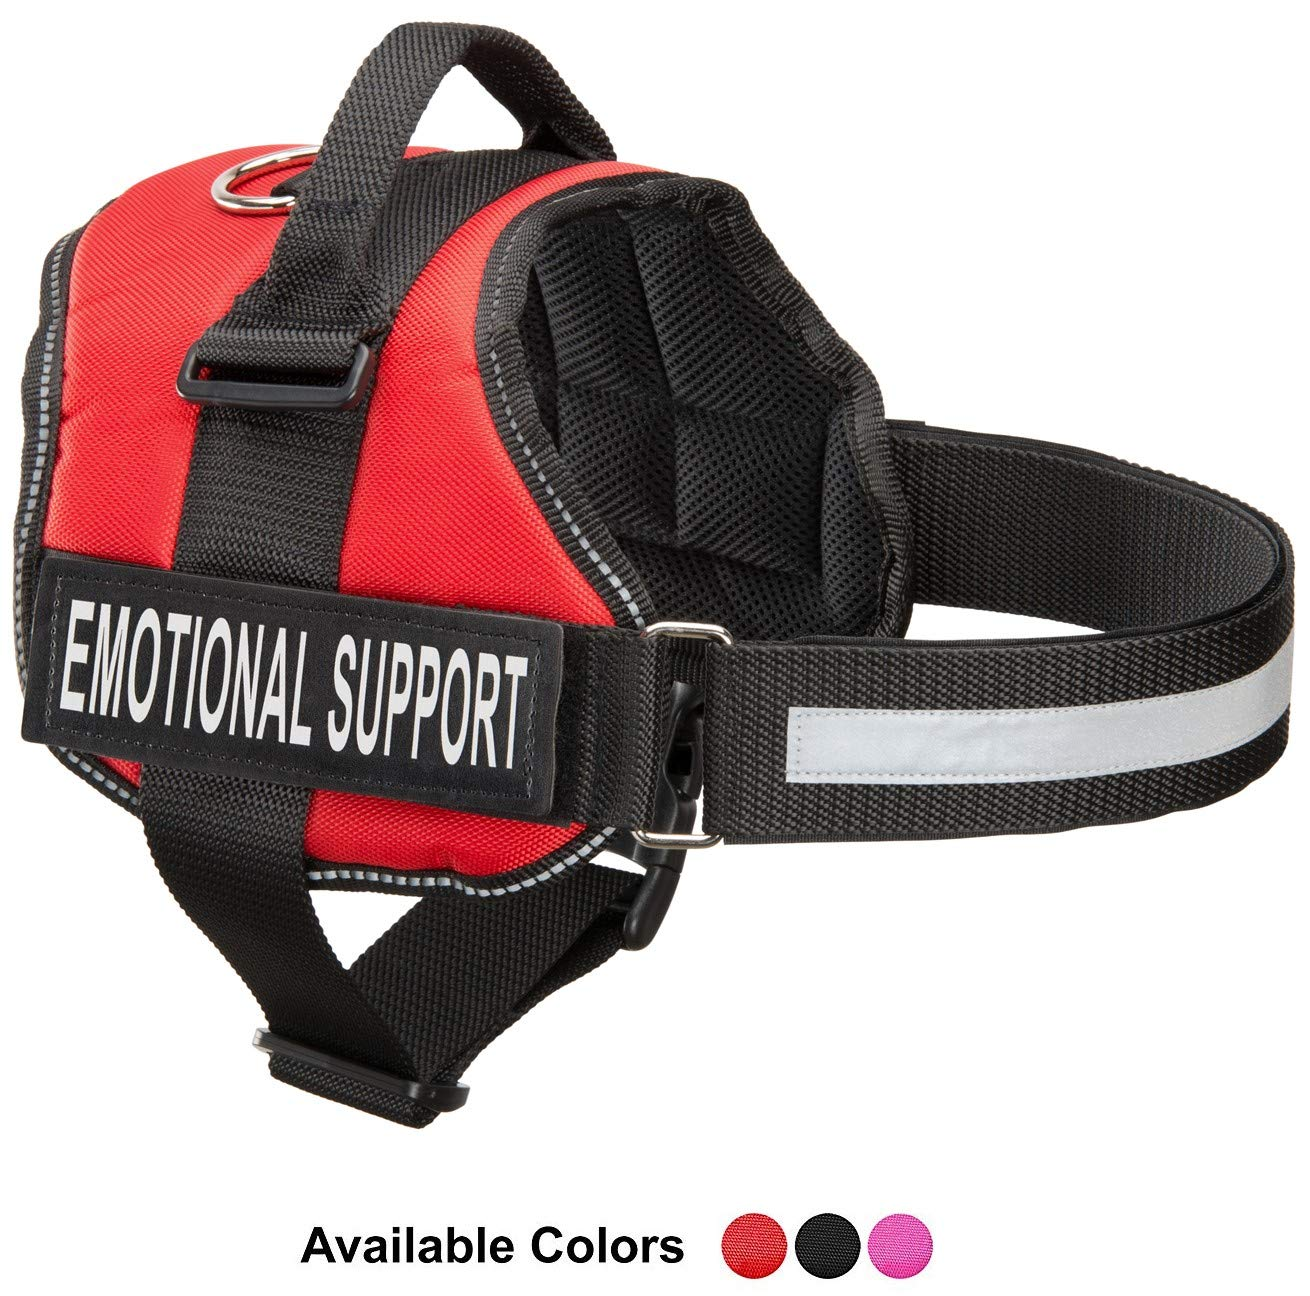 Bright Red Large, Fits Girth 27-33.5\ Bright Red Large, Fits Girth 27-33.5\ Industrial Puppy Emotional Support Dog Harness with Reflective Straps, Interchangeable Patches, Top Mount Handle   7 Adjustable Sizes   Heavy Duty Construction